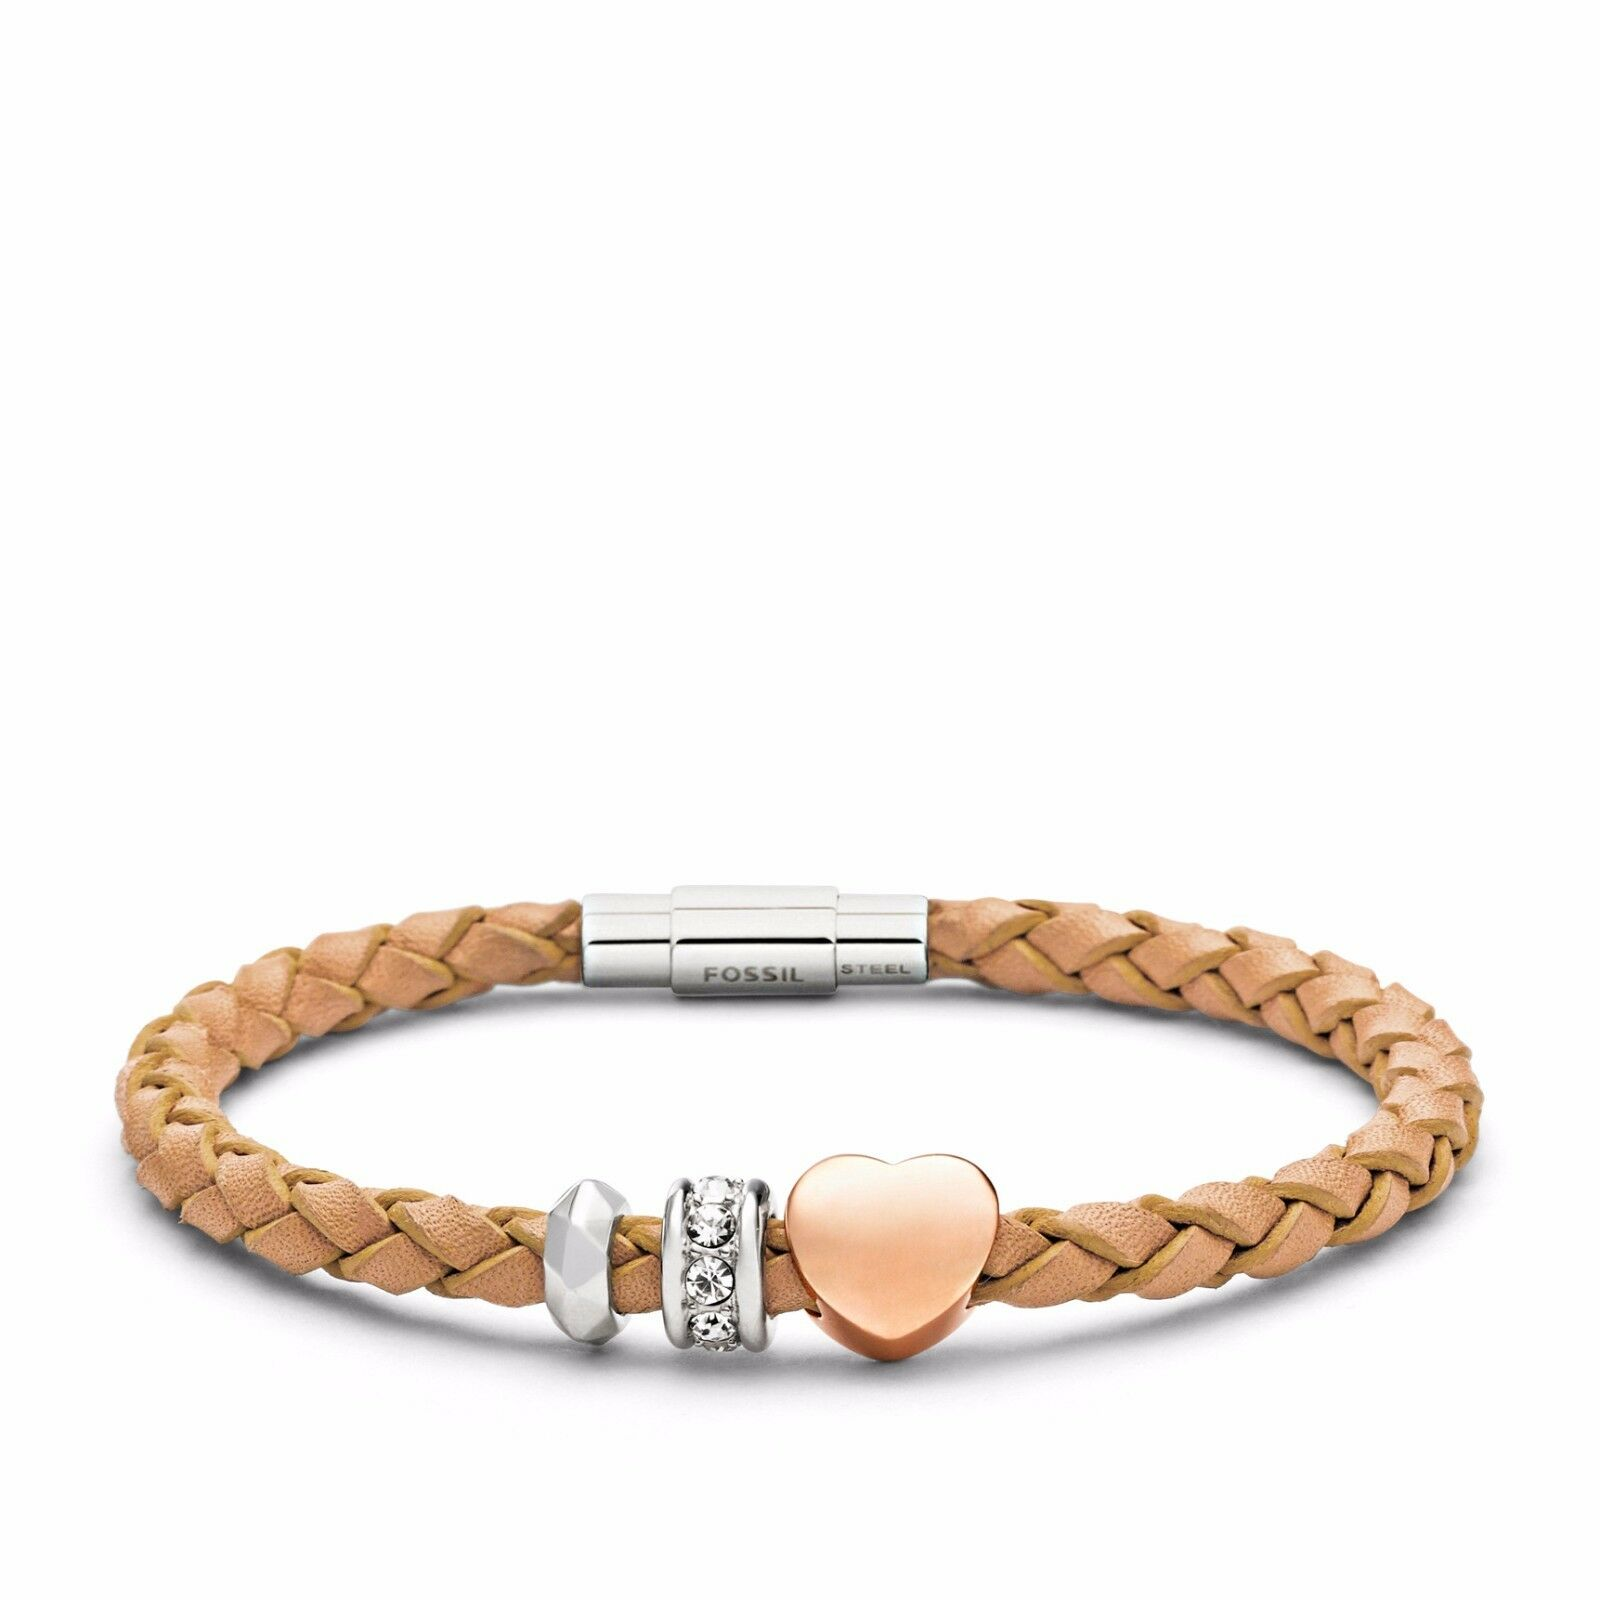 NEW-FOSSIL BRAIDED NEUTRAL LEATHER CRYSTAL HEART CHARM BRACELET JF01567998